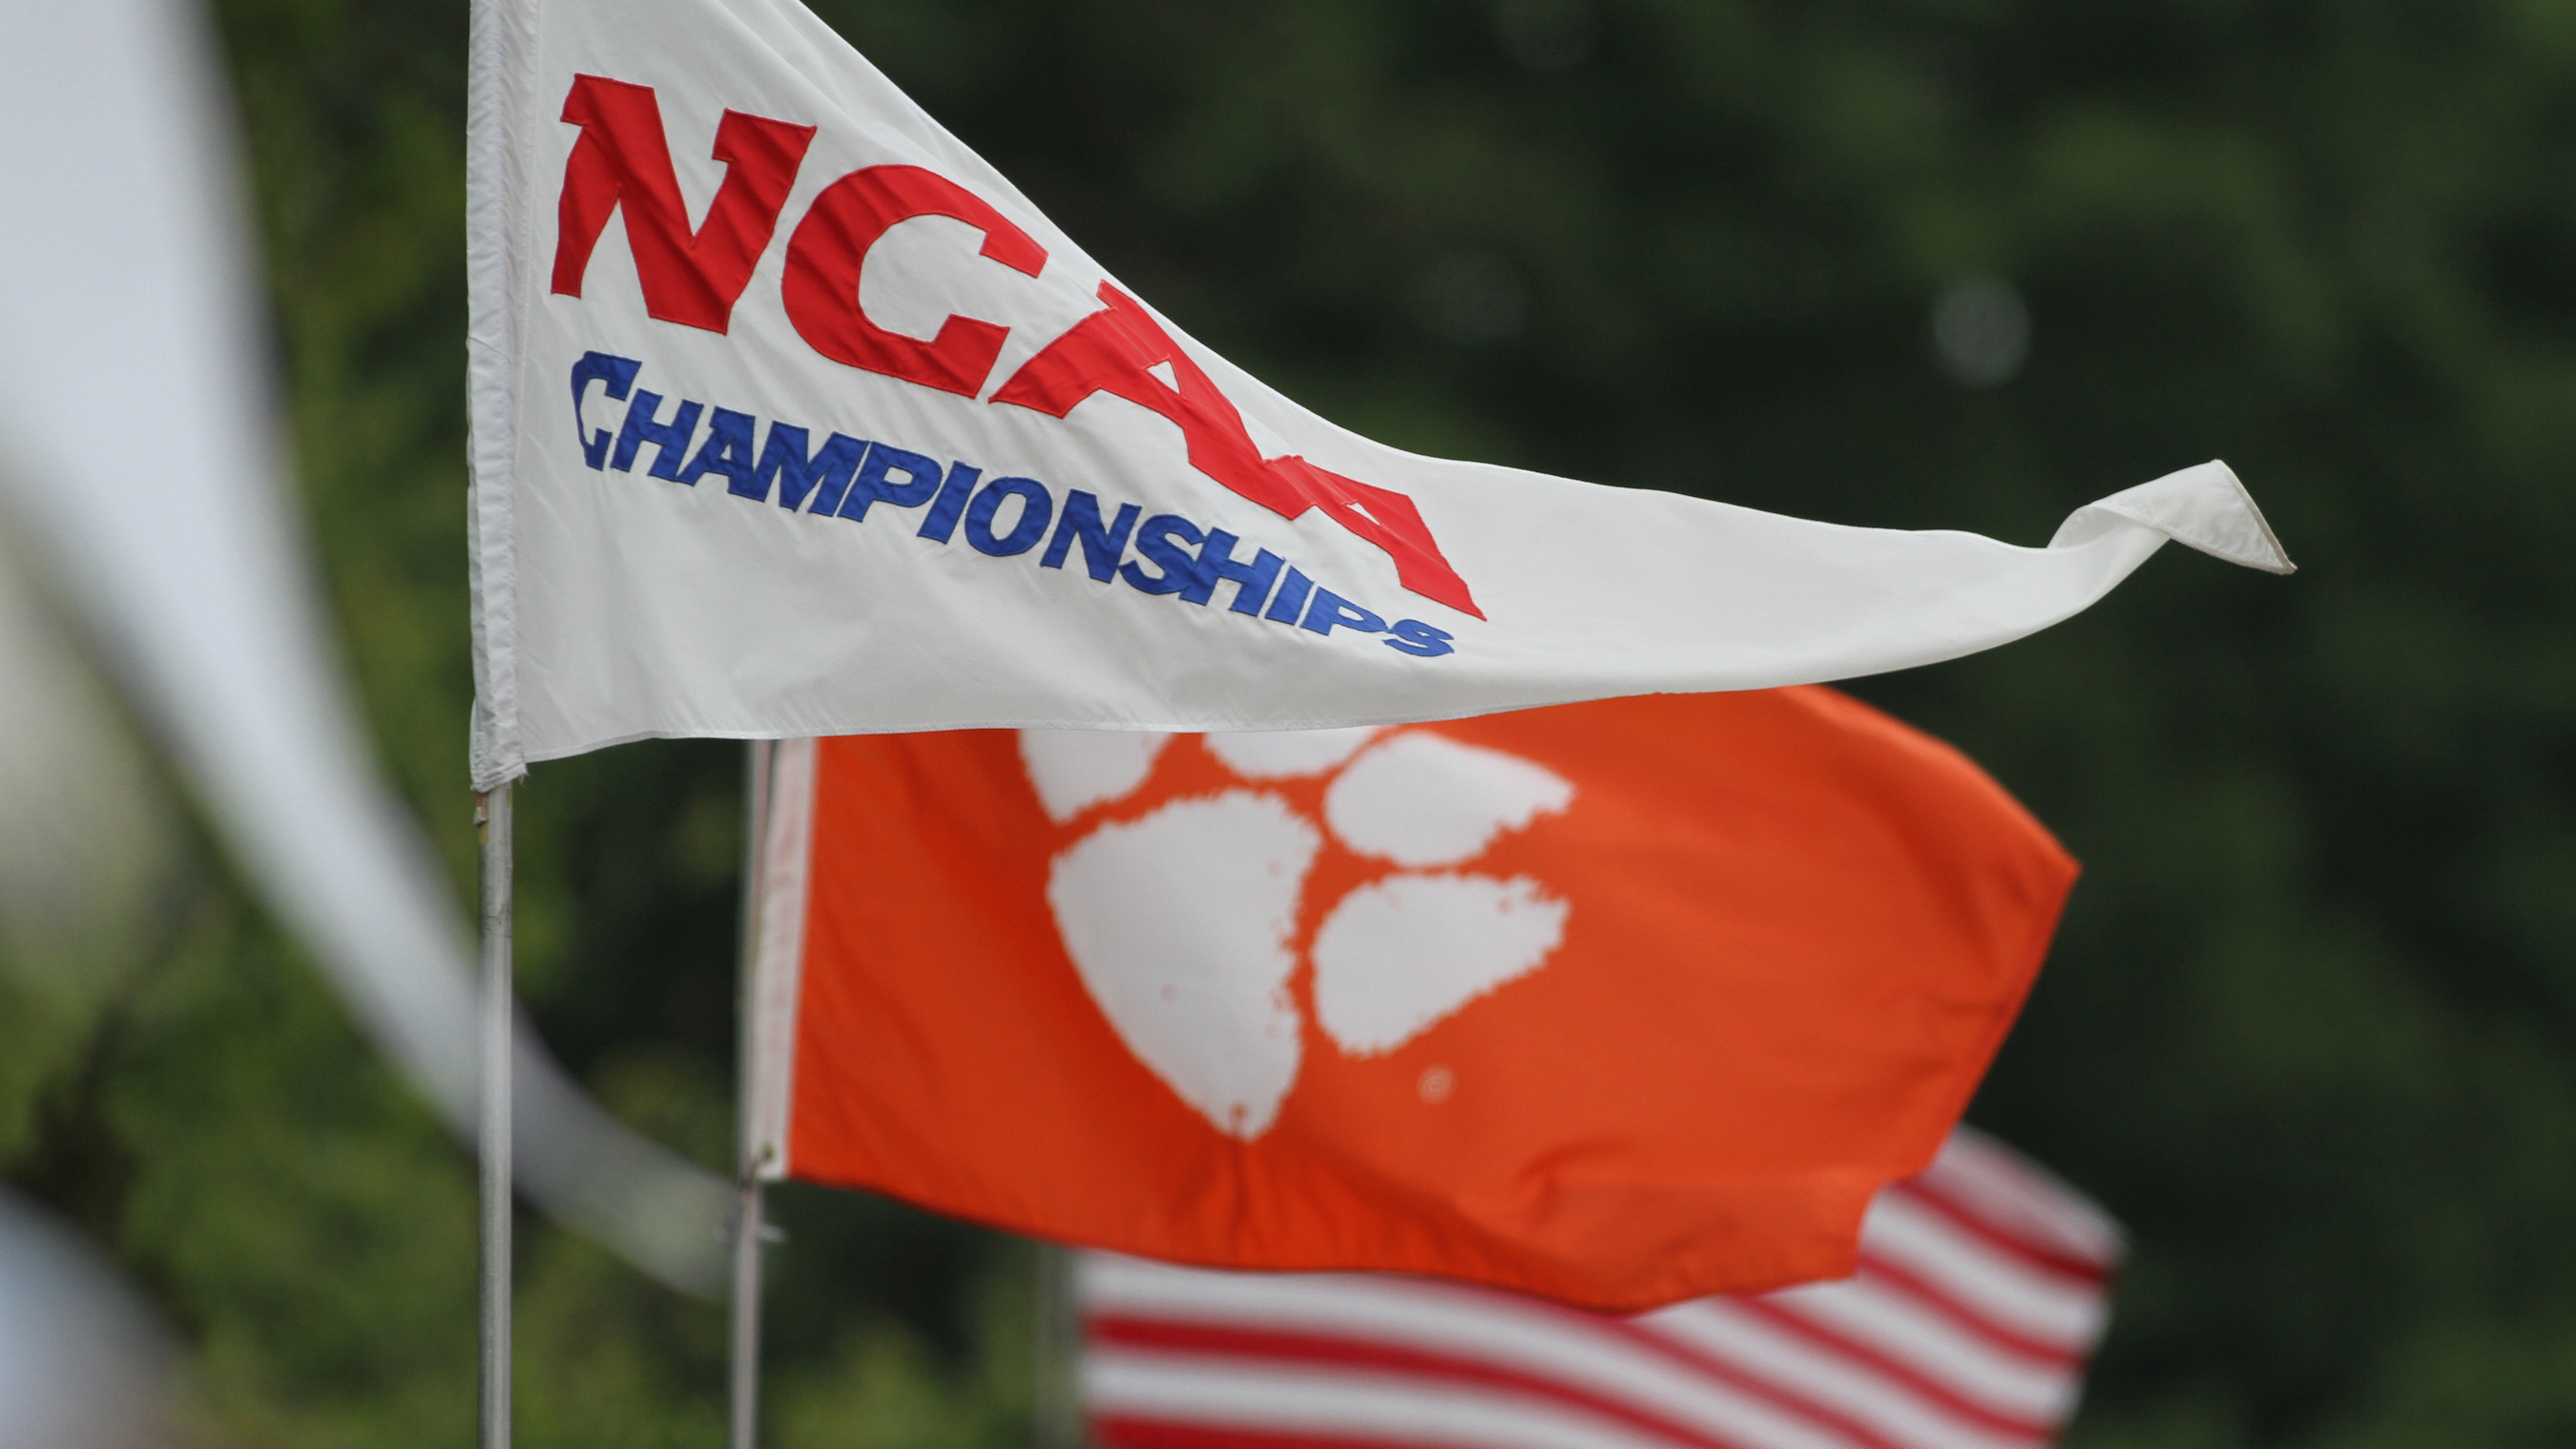 Draws Announced for 2013 NCAA Singles Championships